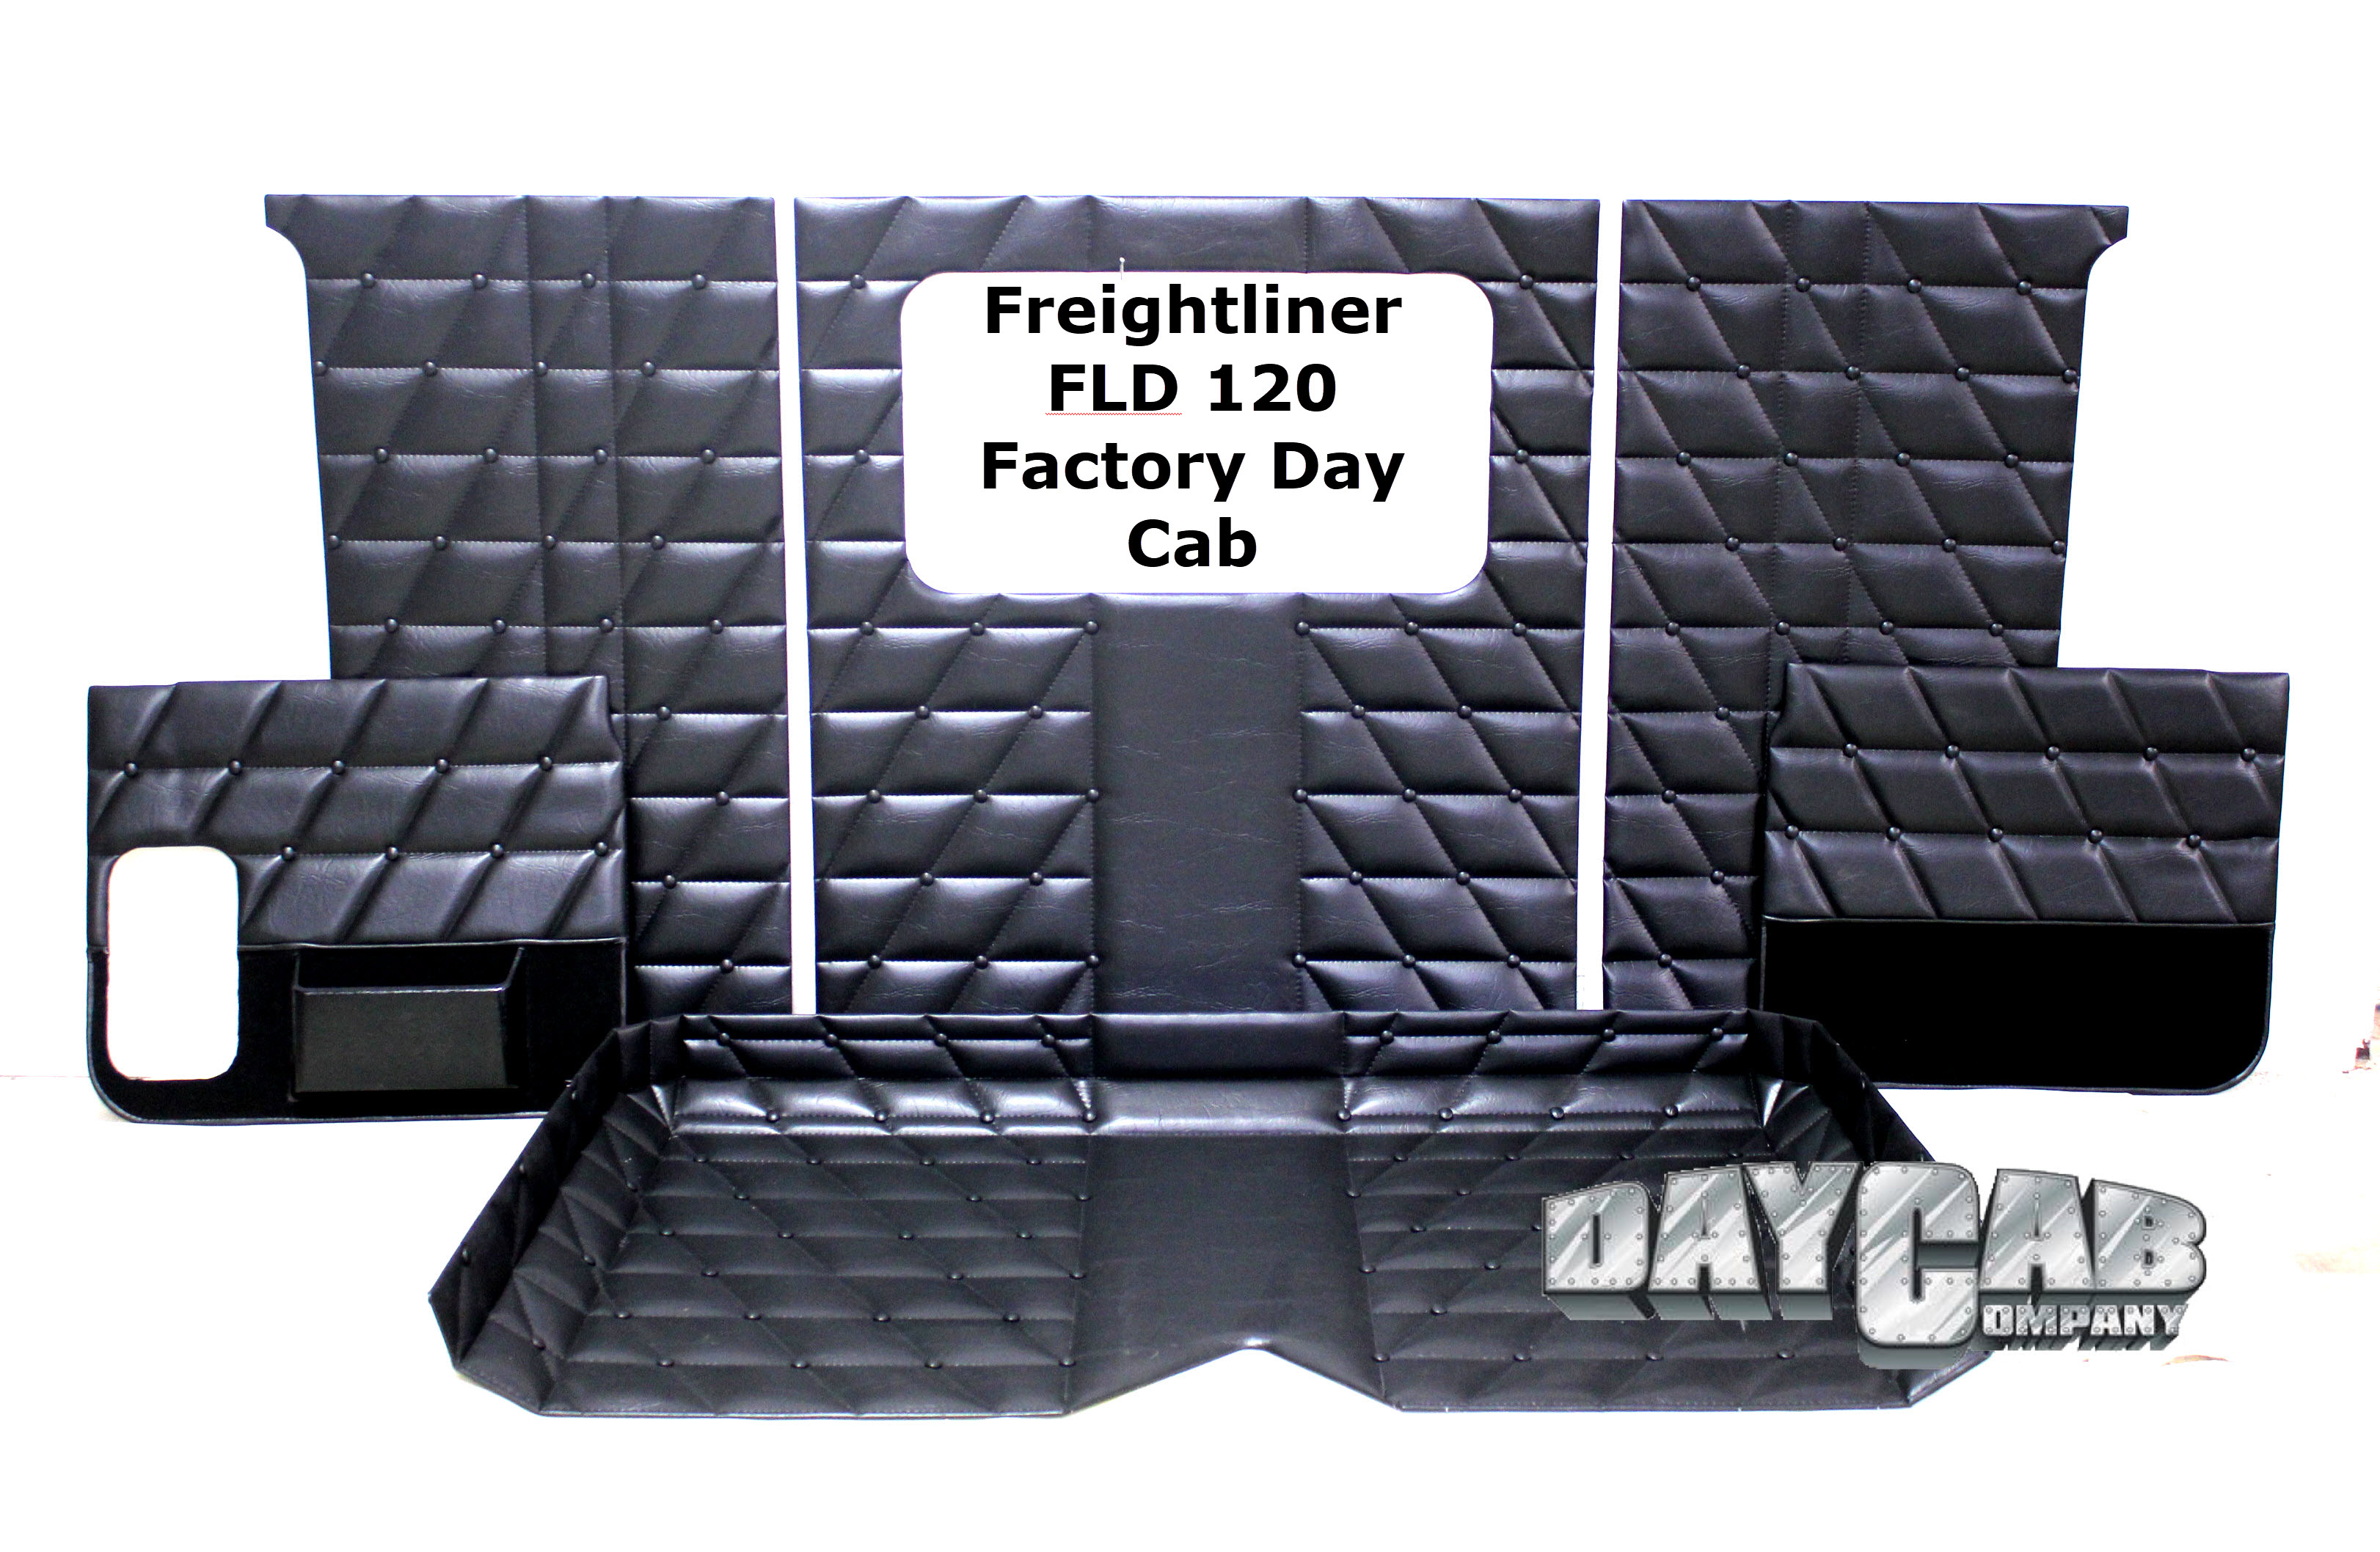 Freightliner FLD 120 Classic XL Interior Upholstery